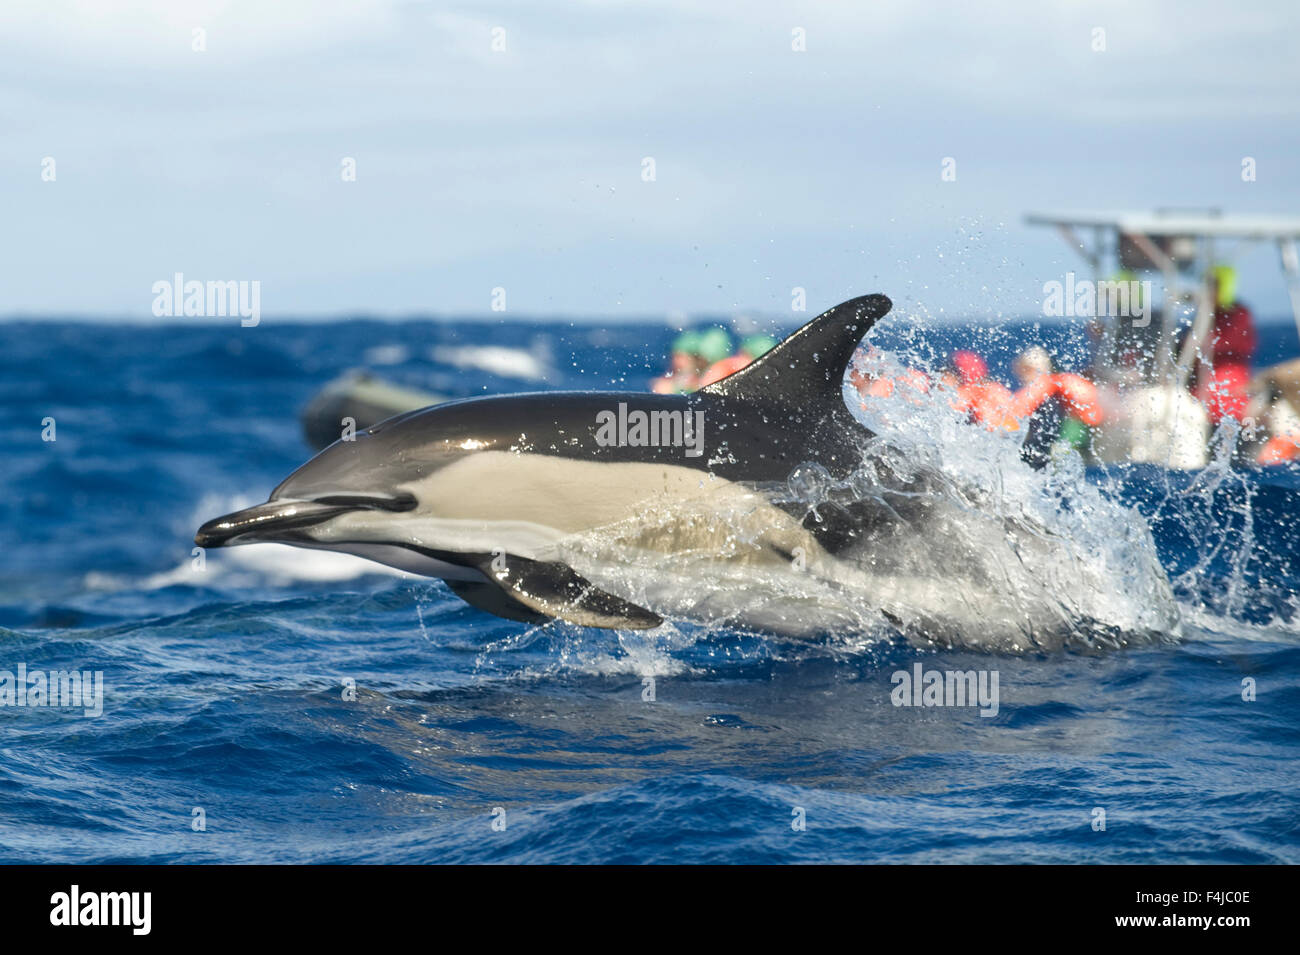 Common dolphin (Delphinus delphis) porpoising with a whale watching boat behind, Pico, Azores, Portugal, June 2009 - Stock Image